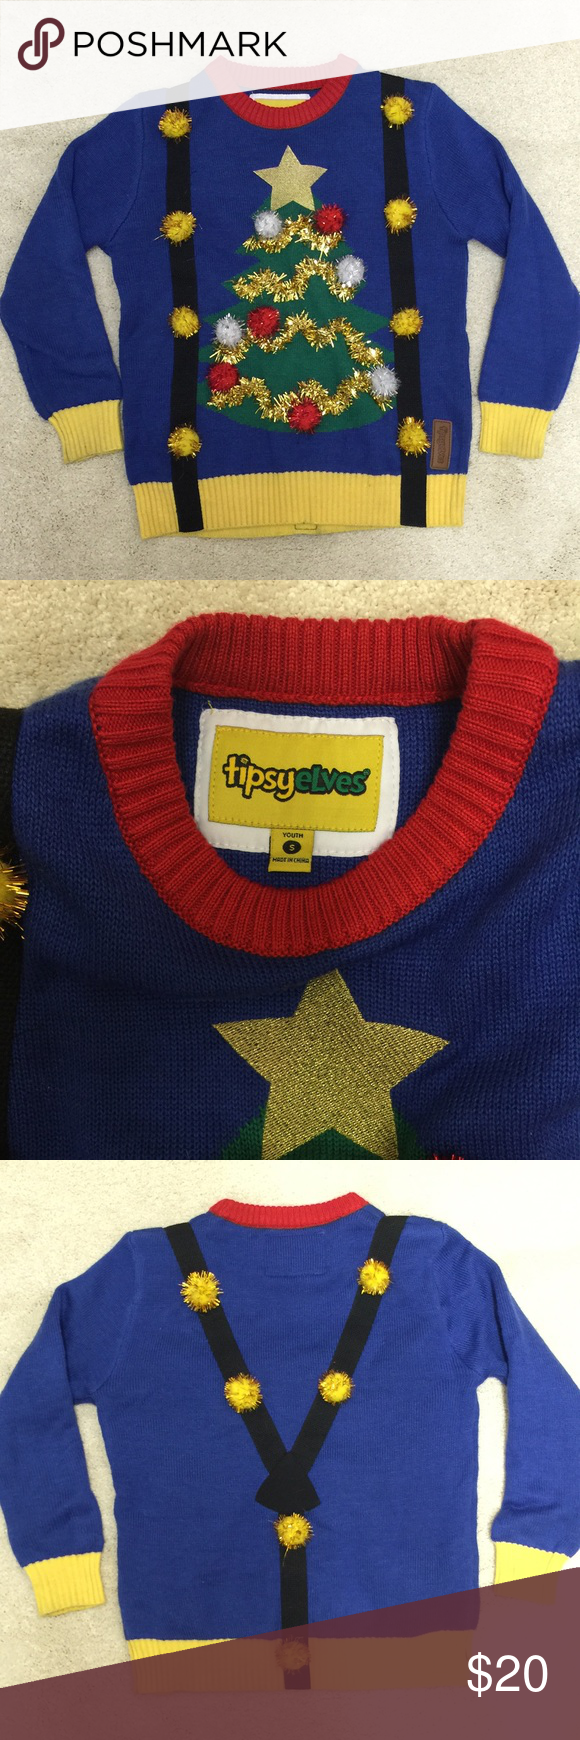 Kids Ugly Sweater w Suspenders Super cute, fun and playful